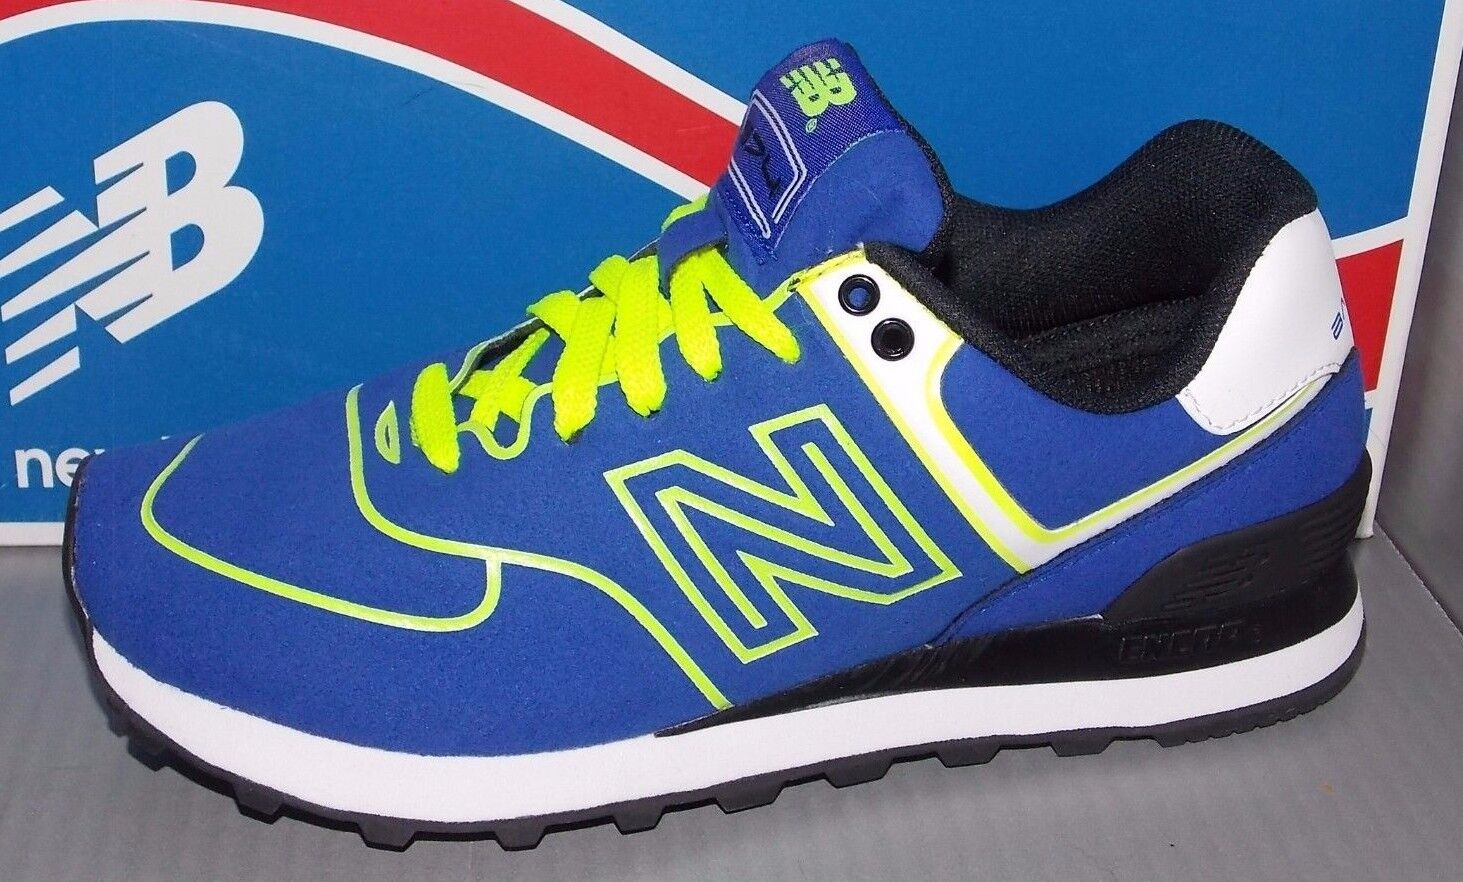 Damenschuhe NEU BALANCE WL 574 NEB in colors Blau / NEON YELLOW SIZE 6